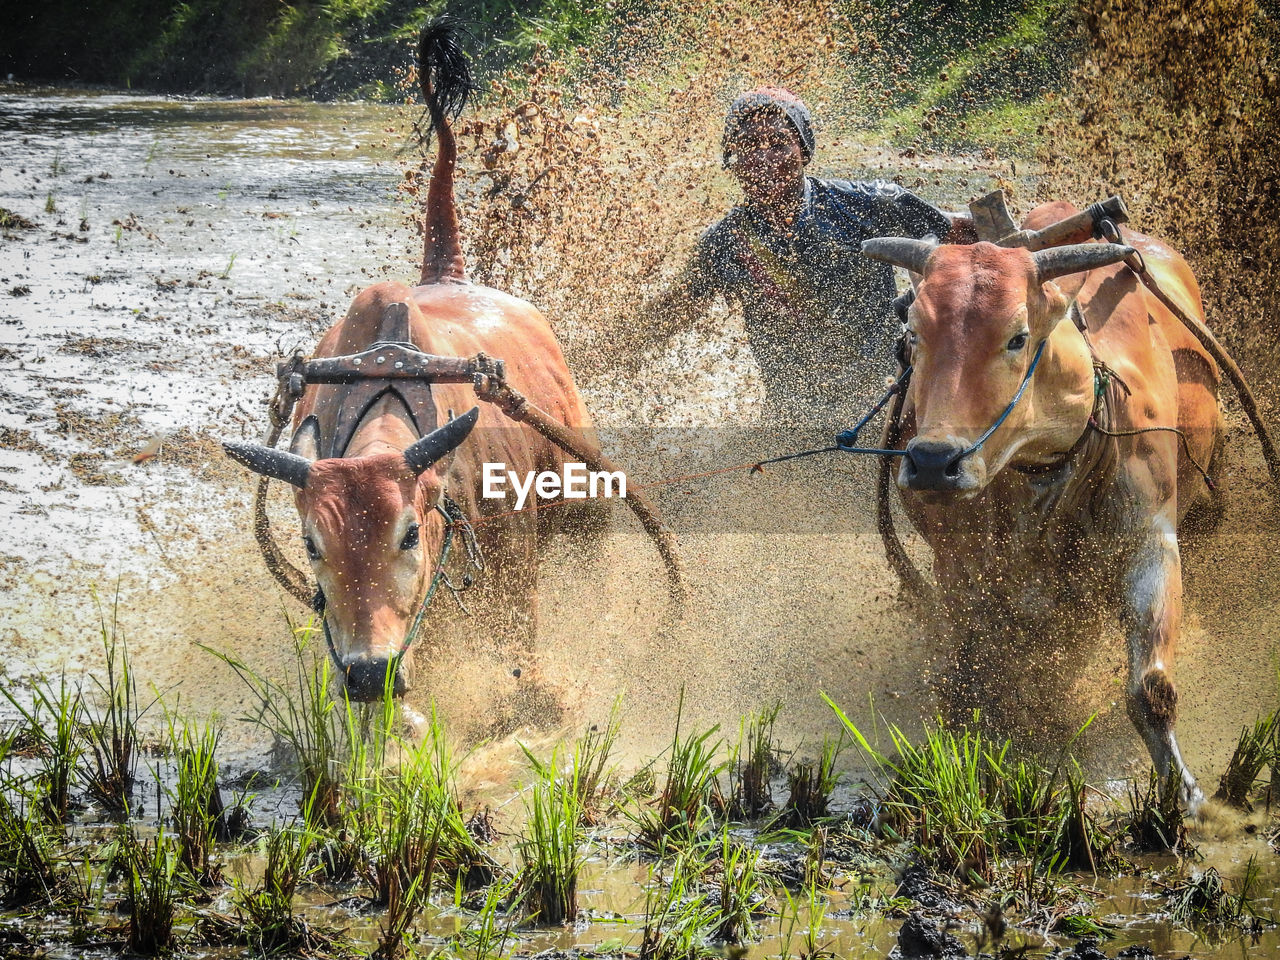 domestic animals, mammal, livestock, horse, field, herbivorous, cow, day, outdoors, water, nature, real people, men, motion, grass, tree, people